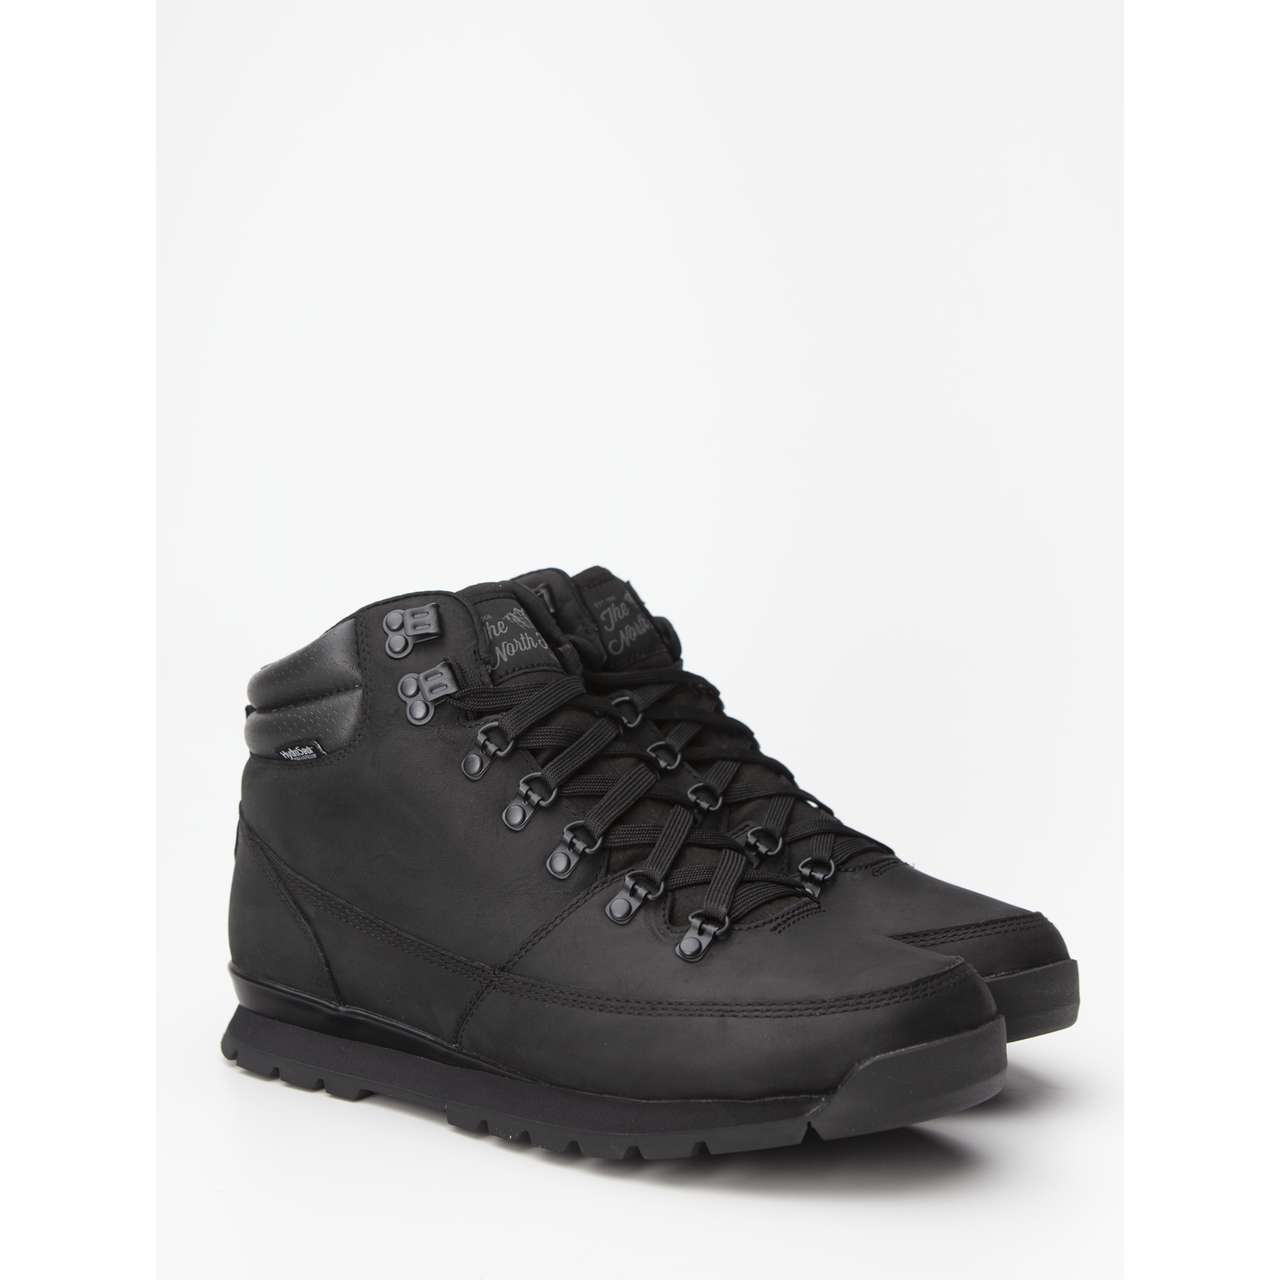 Buty The North Face M B TO B REDX LTHR KX8 eastend.pl